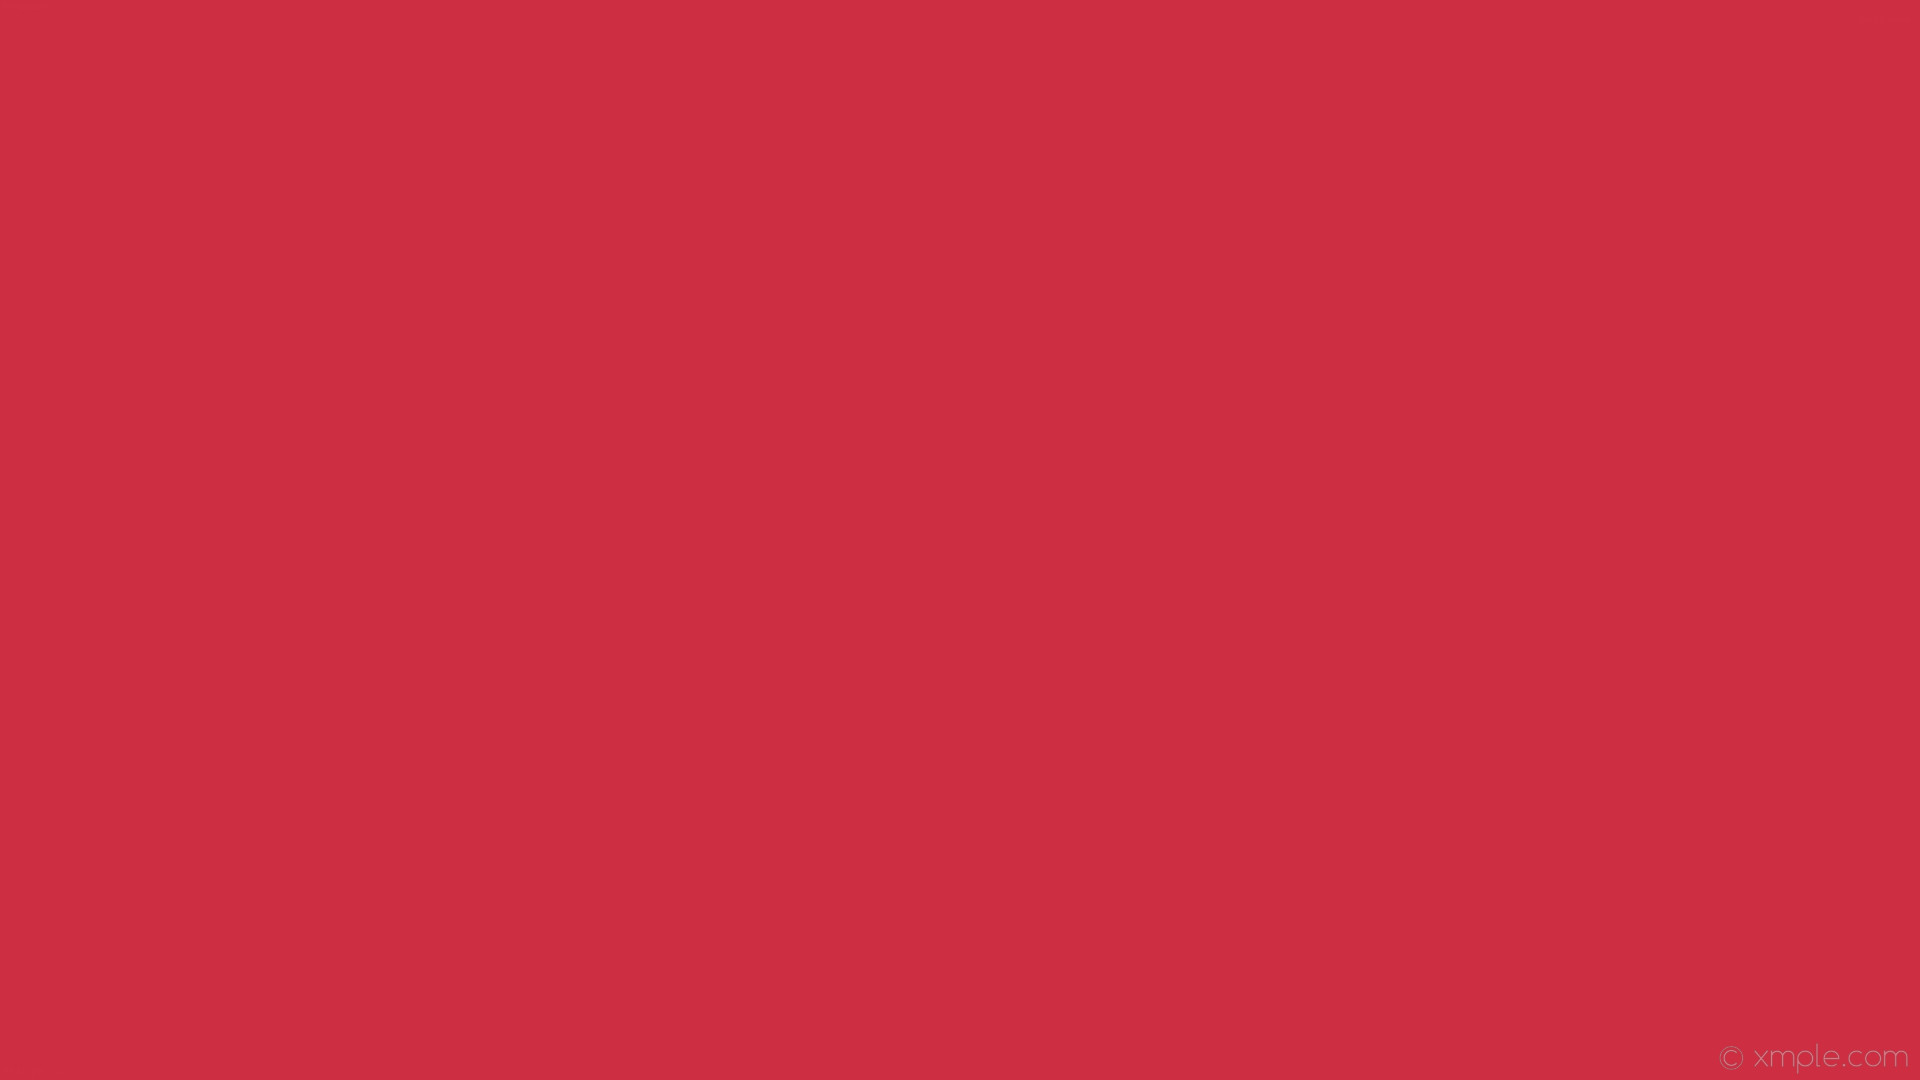 1920x1080 wallpaper red single plain solid color one colour #cd2e42